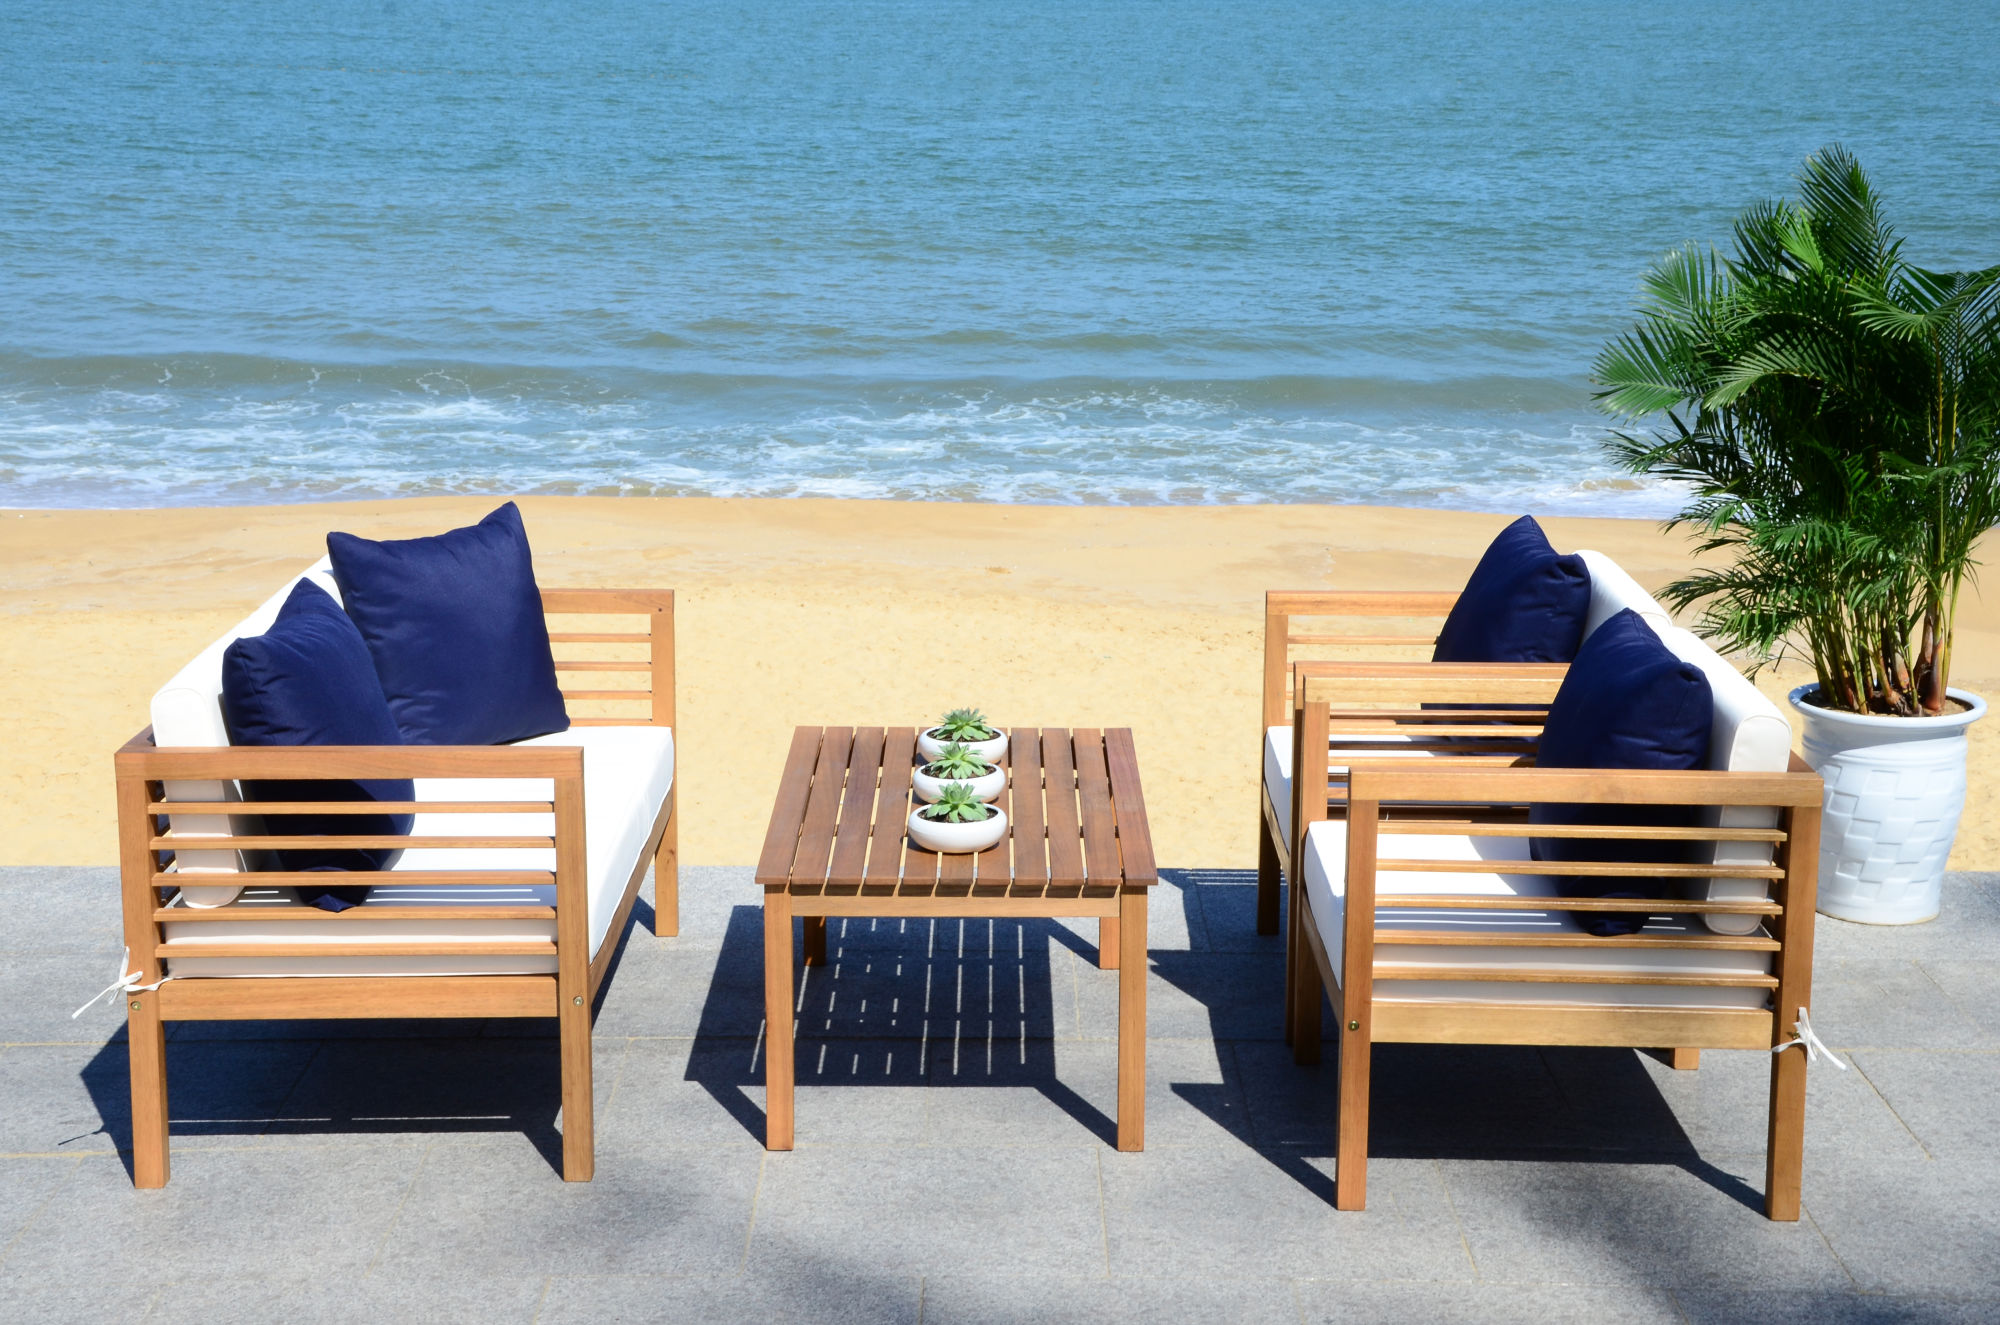 Alda 4 Pc Outdoor Set With Accent Pillows on Safavieh Alda 4Pc Outdoor Set id=23869